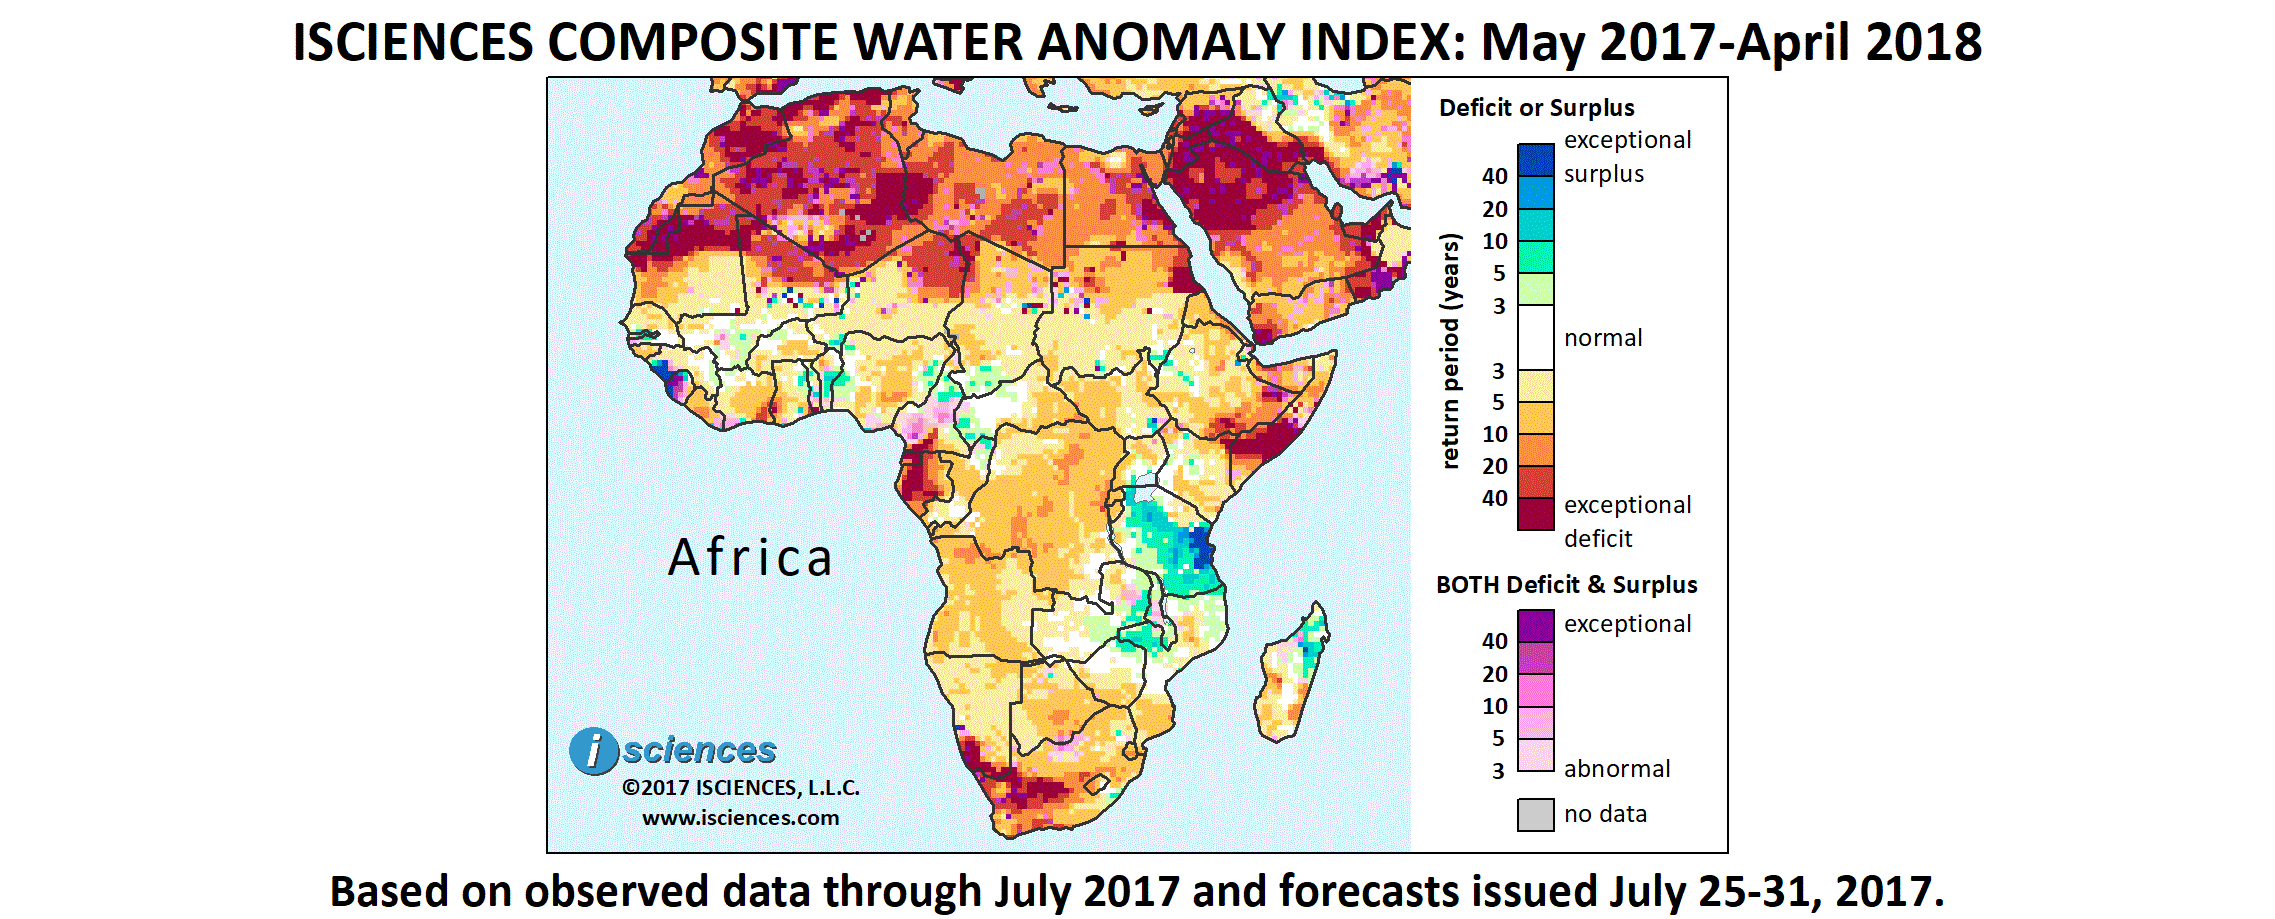 ISciences_Africa_R201707_12mo_twit_pic.png